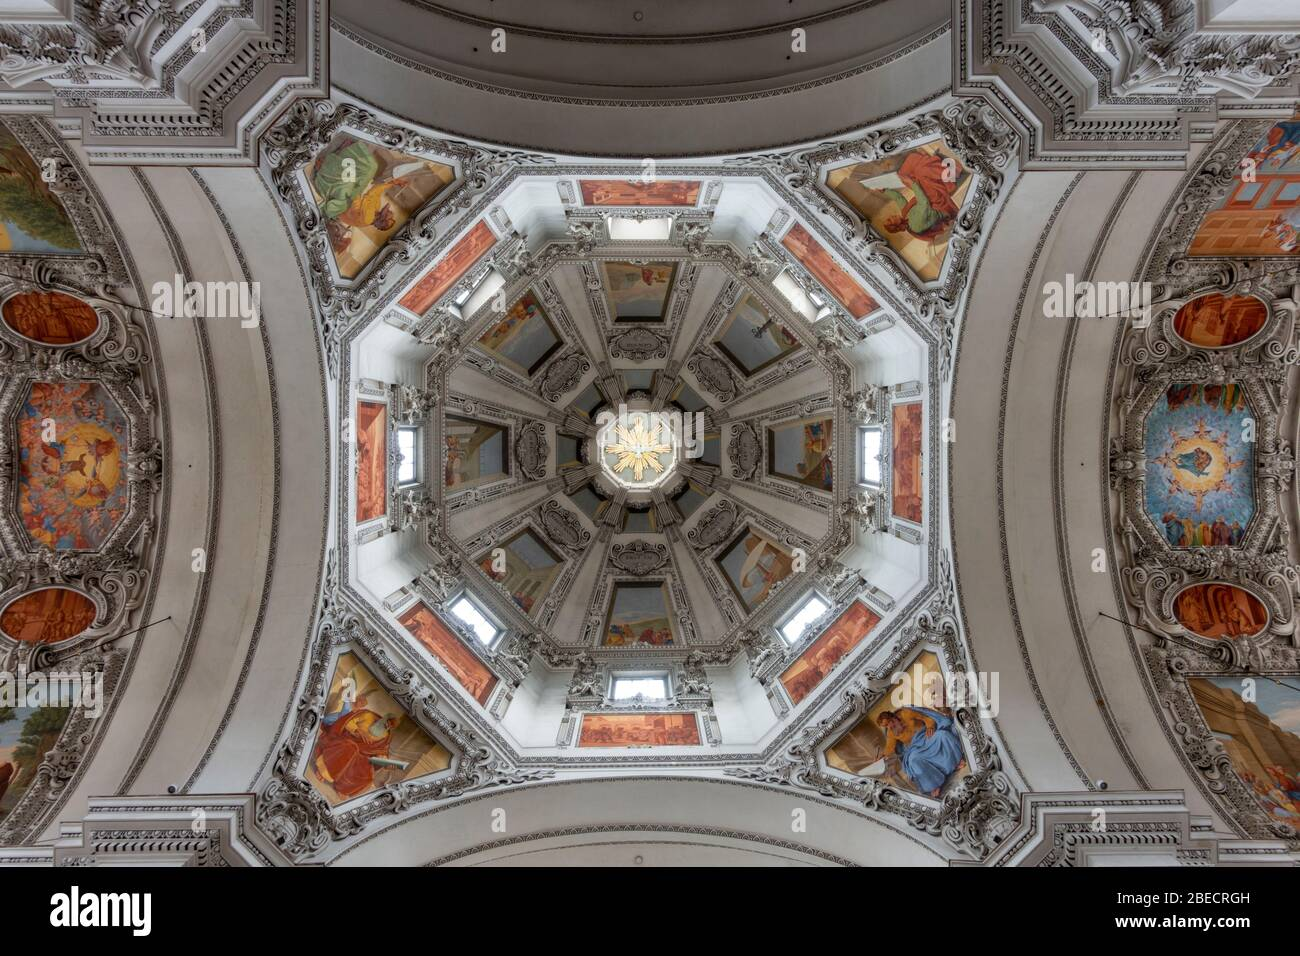 View looking straight up at the stunning ceiling of the main nave and dome inside Salzburg Cathedral (Dom zu Salzburg), Salzburg, Austria. Stock Photo